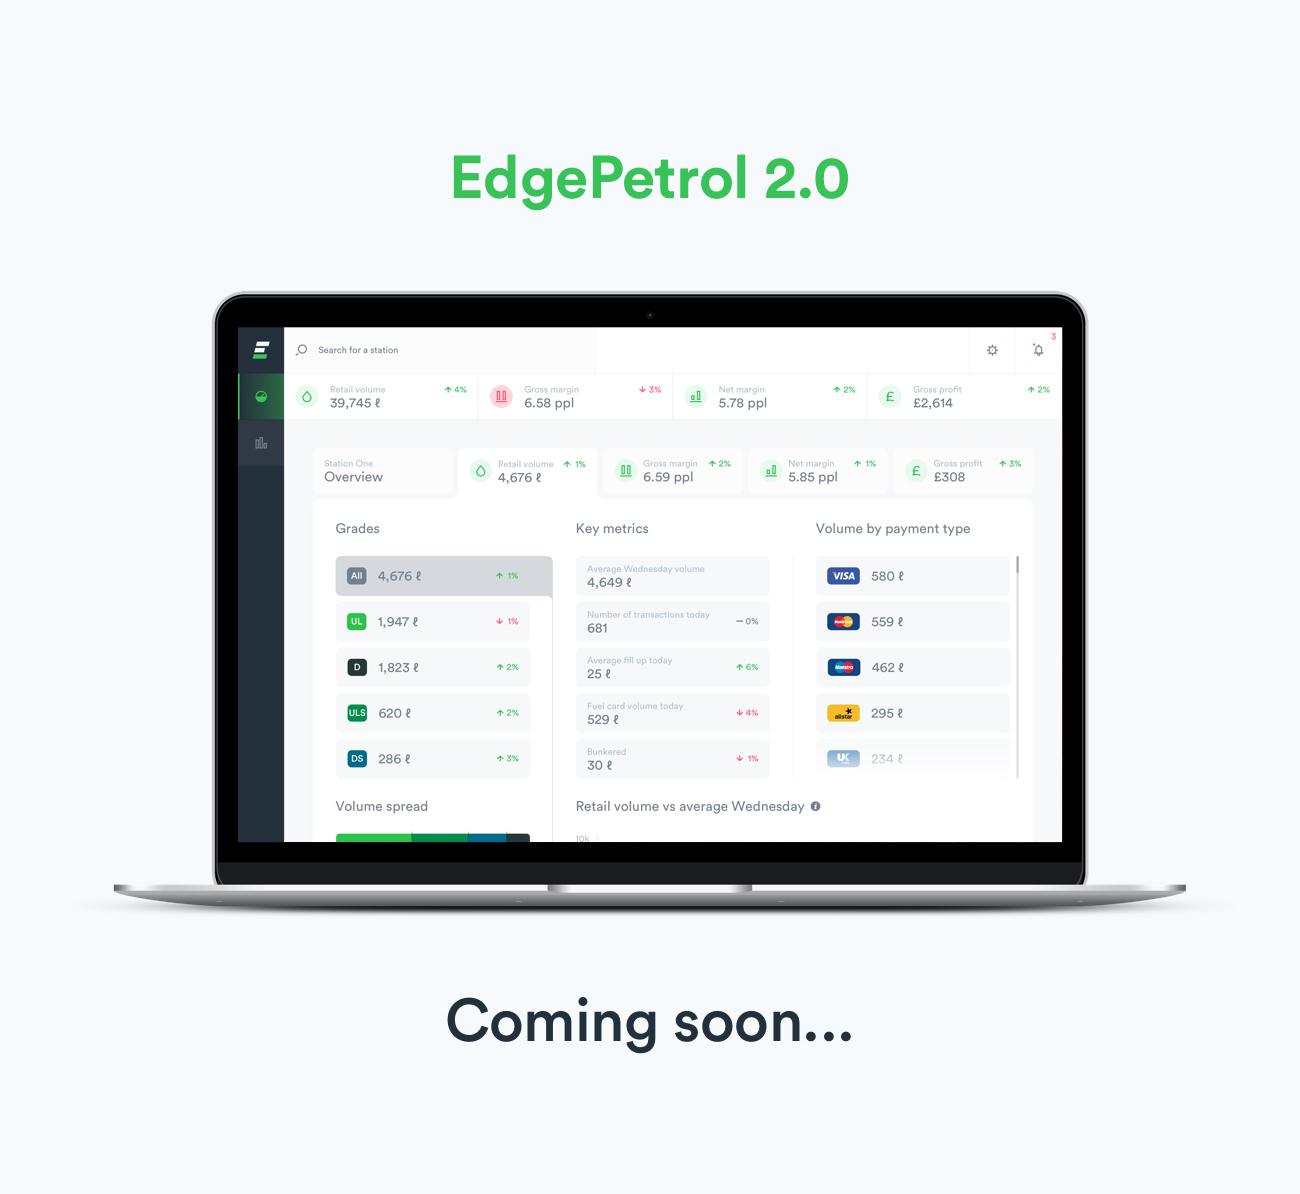 EdgePetrol is changing... we are having a makeover!